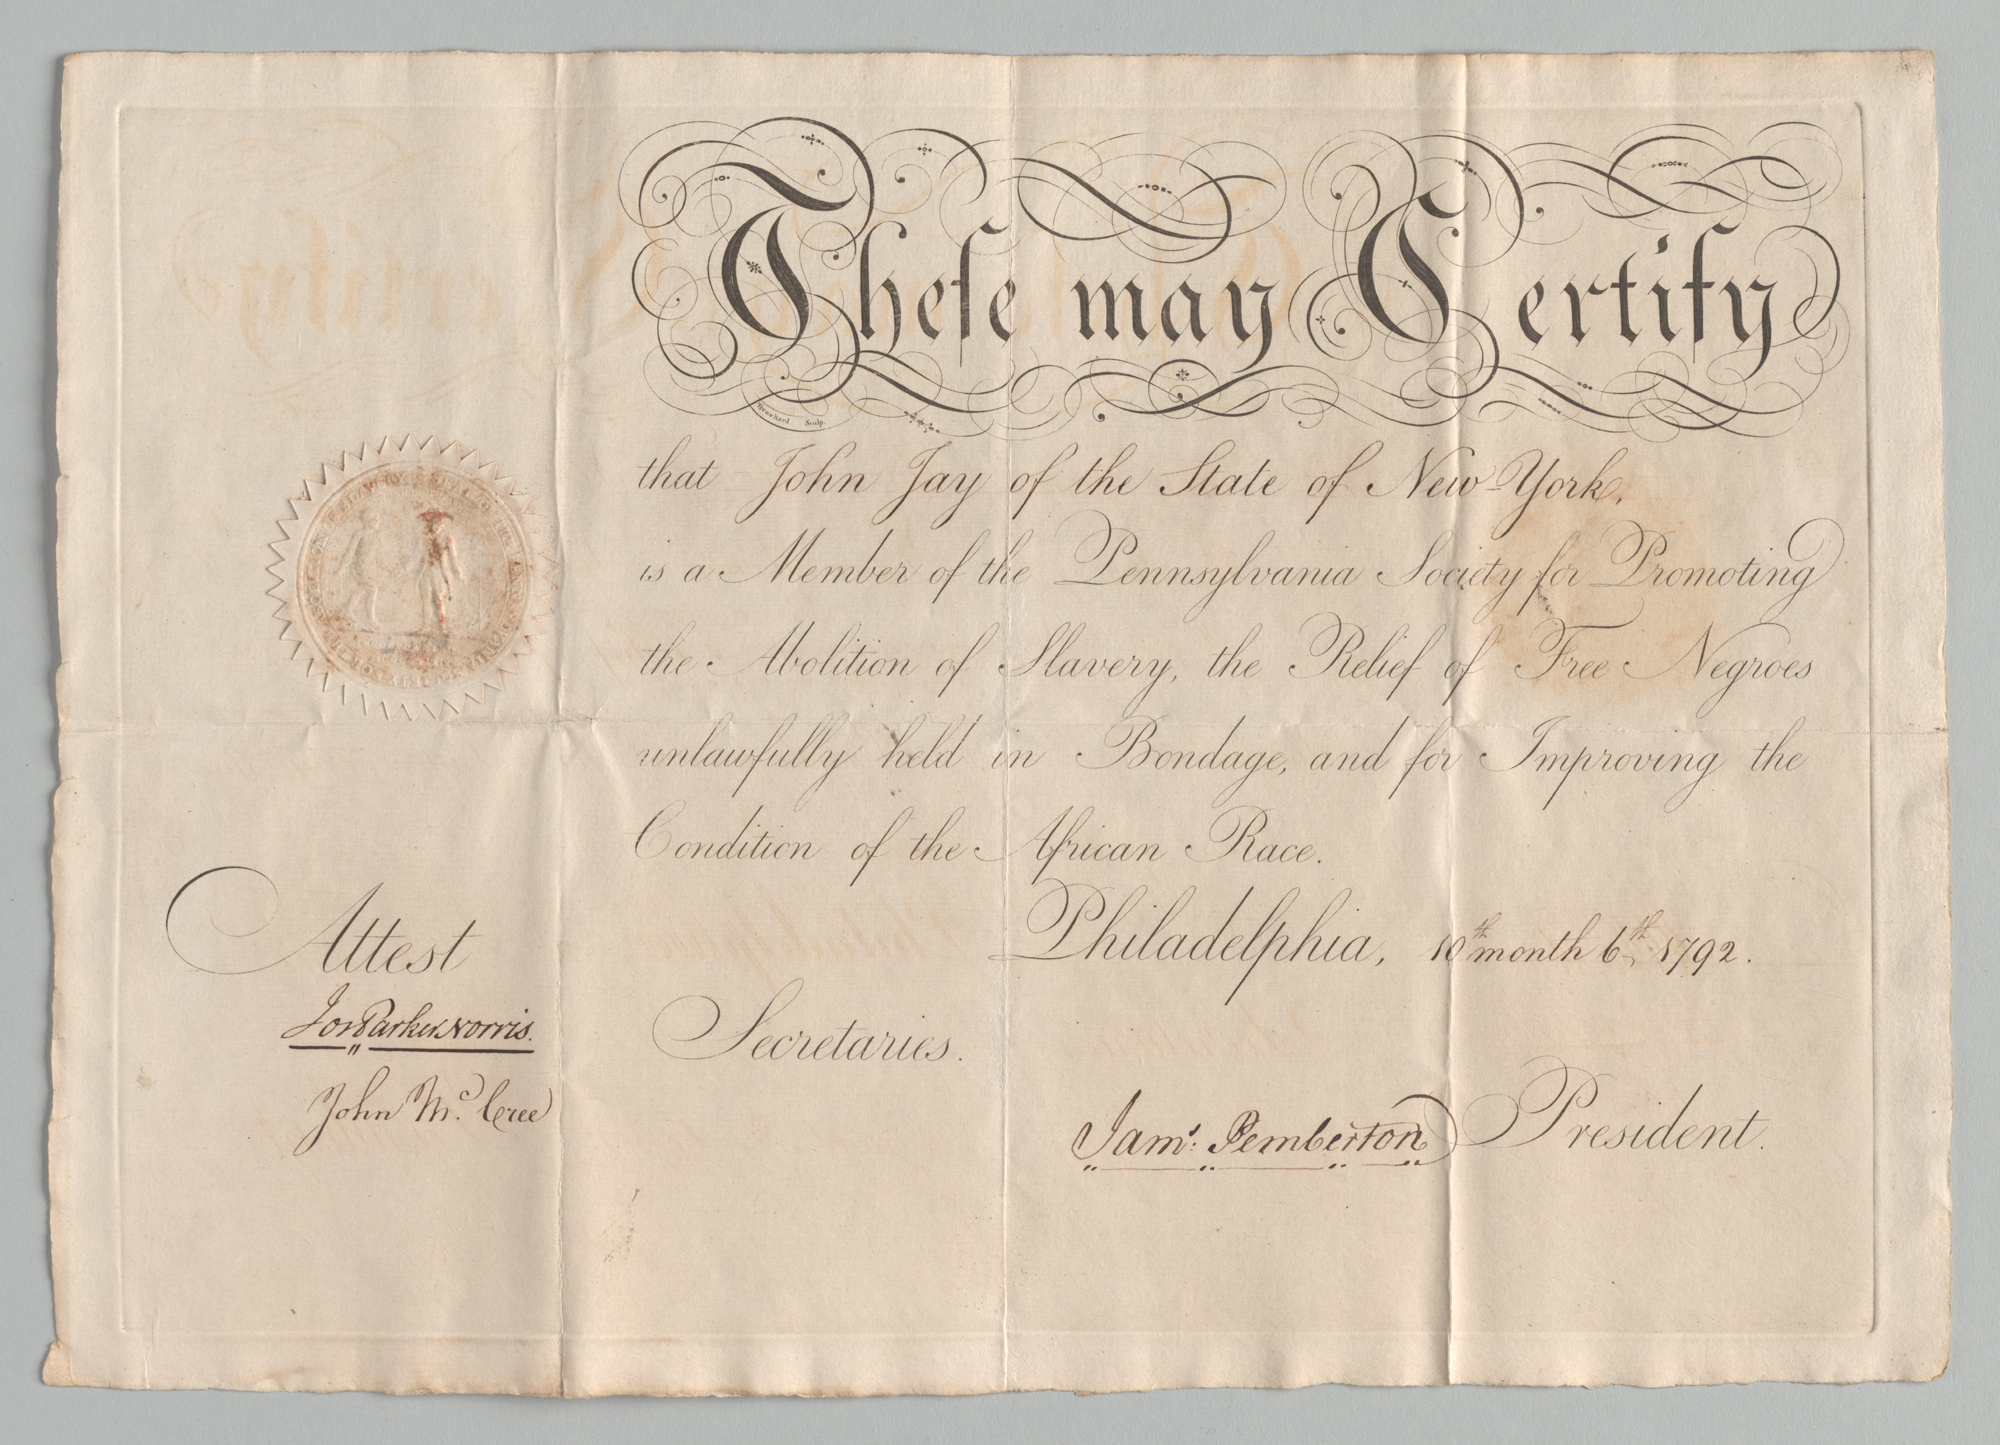 Certificate of Membership in Pennsylvania Soicety for Promoting the Abolition of Slavery, front